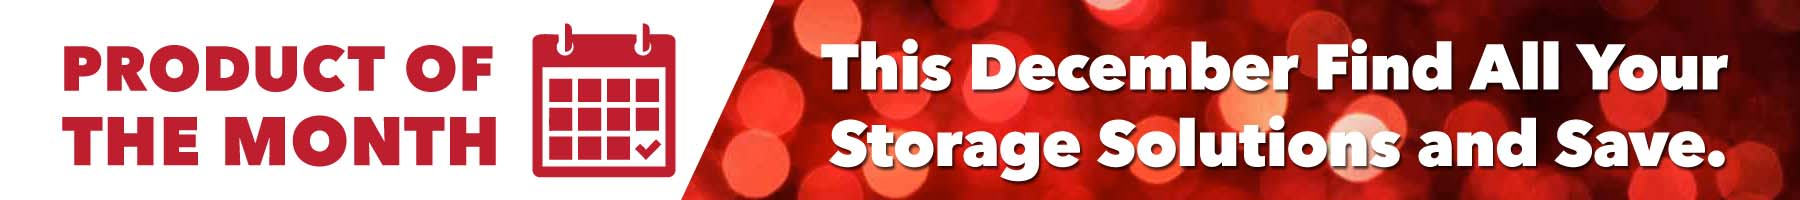 December Product Of The Month | Craftline Storage System